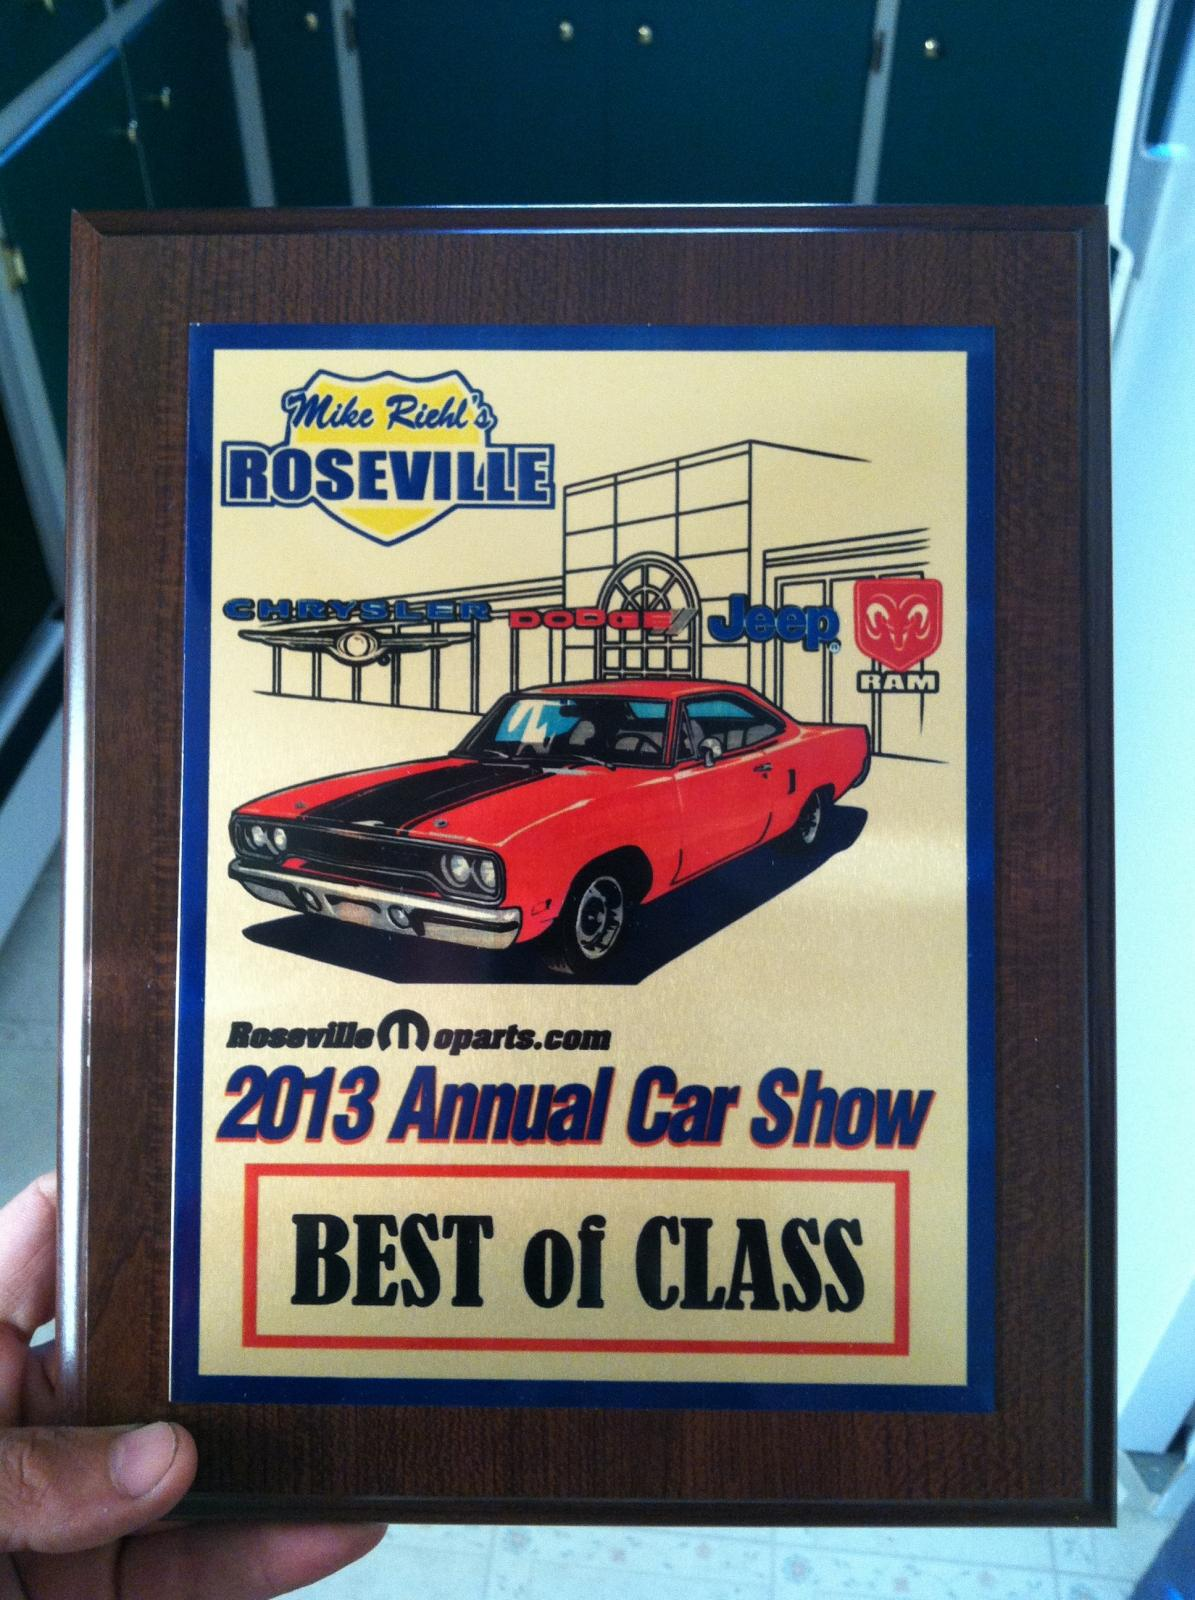 Best of Class award with the SRT8